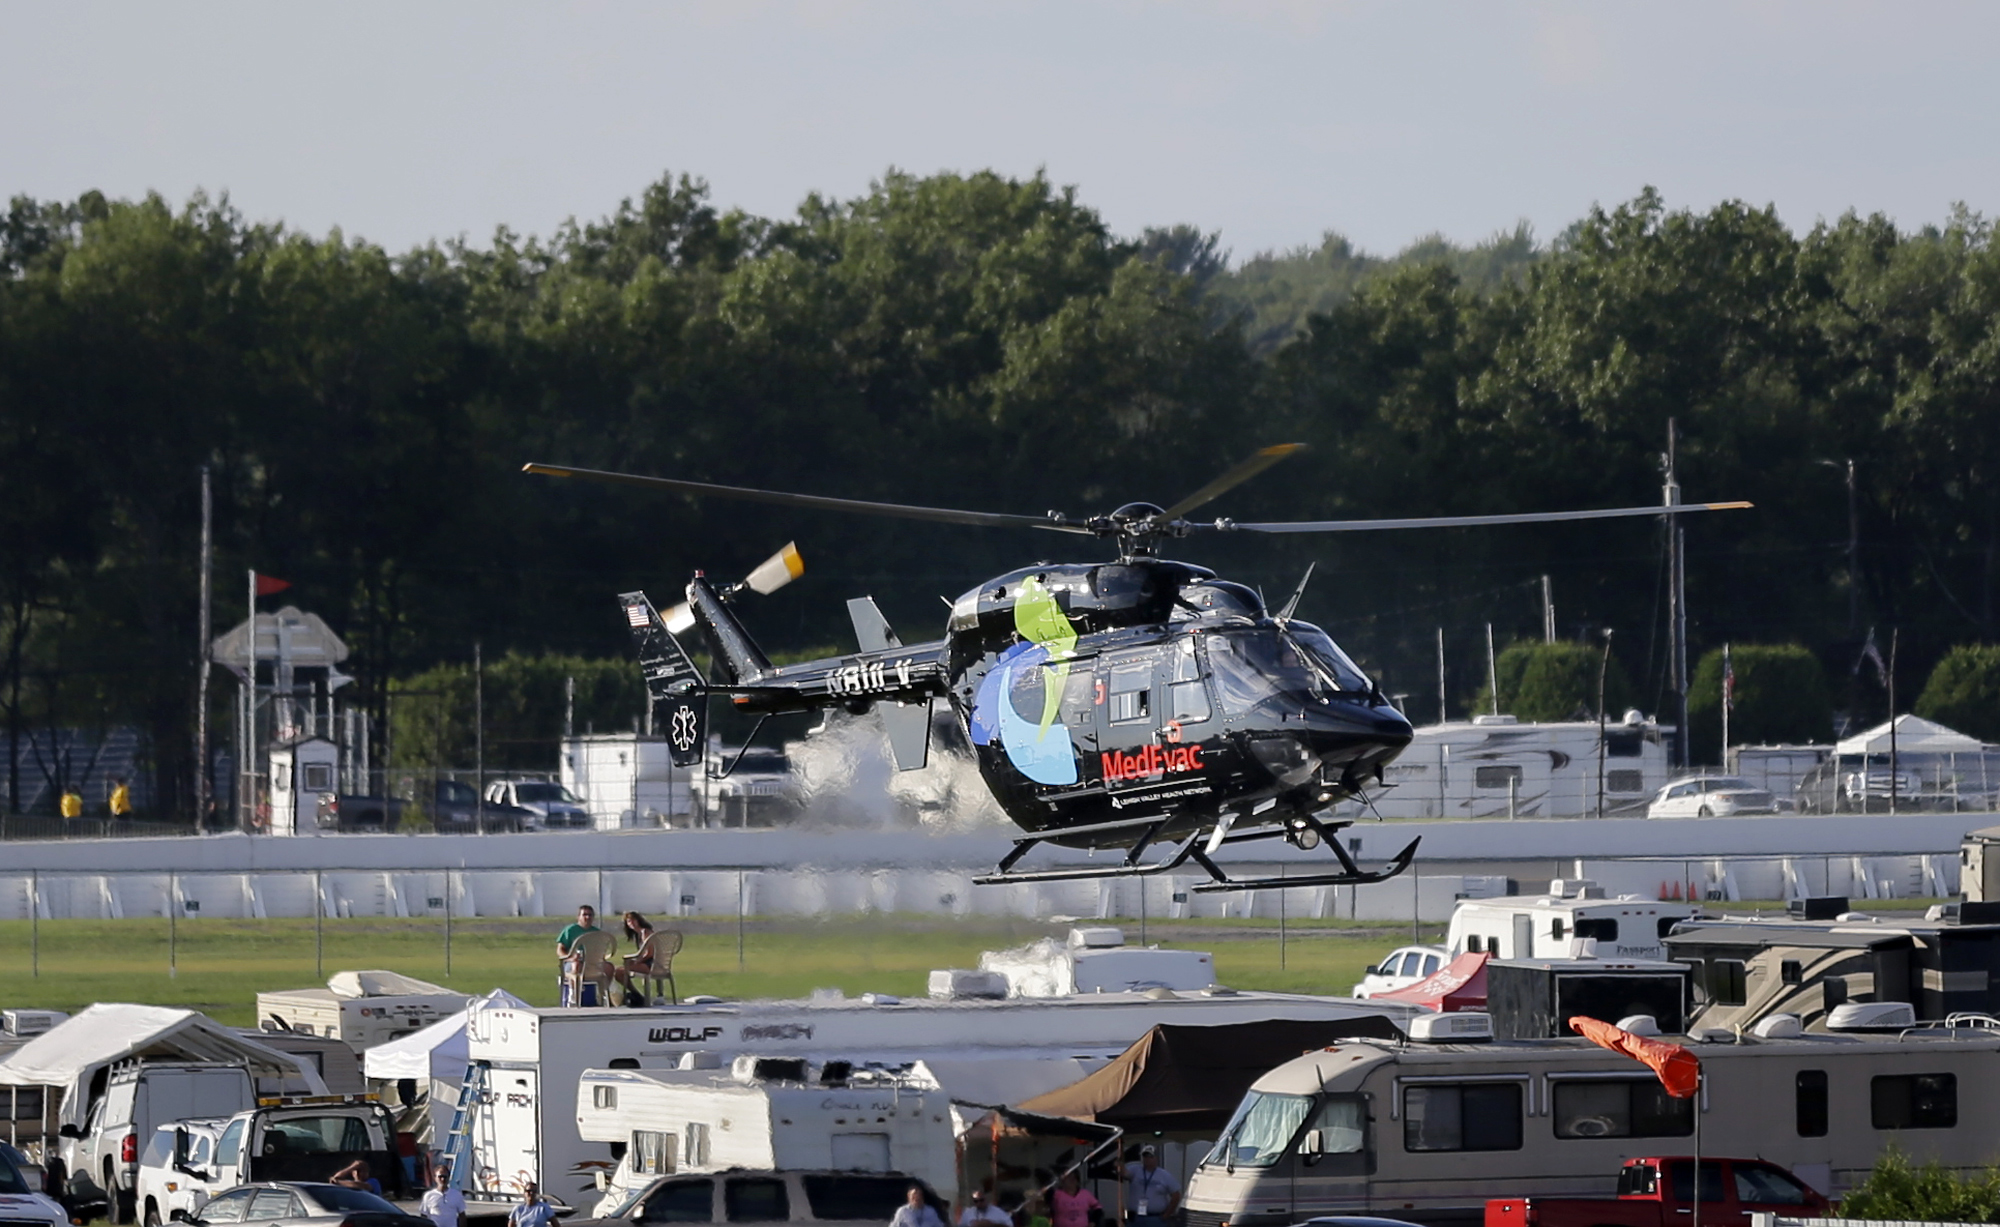 Photo: Justin Wilson, IndyCar driver, being airlifted Aug. 23, 2015